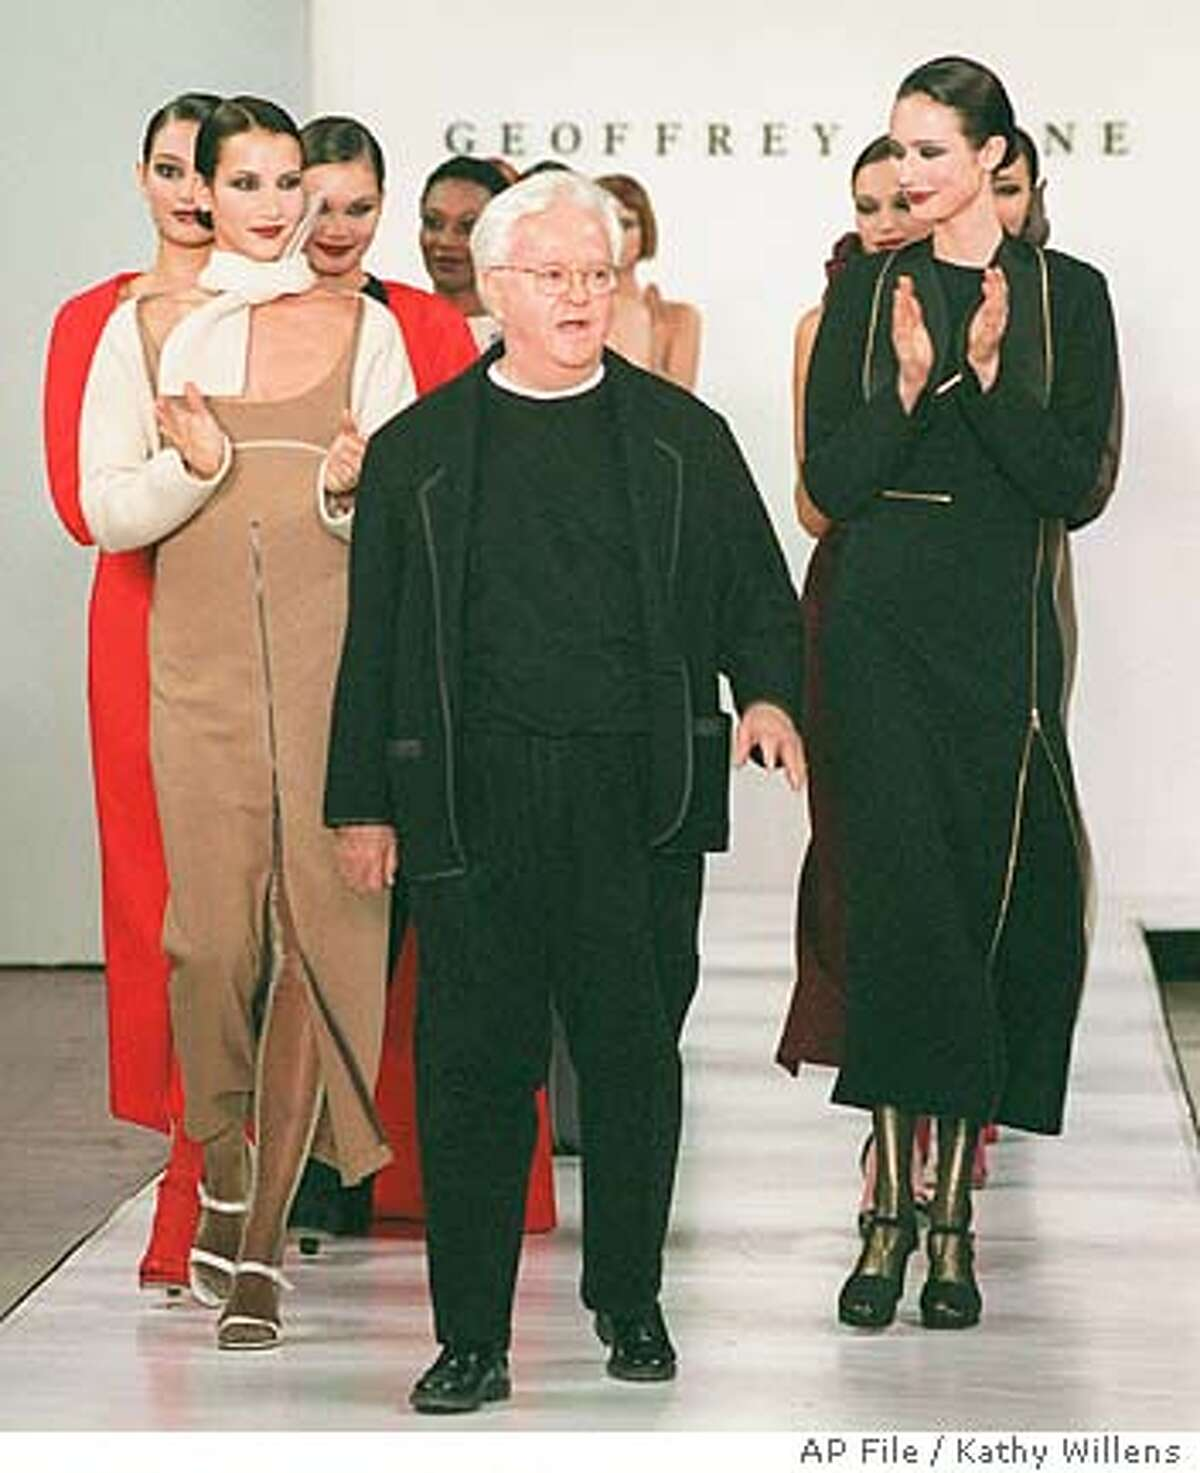 **FILE**Models applaud designer Geoffrey Beene following the presentation of his 1999 fall collection on April 8, 1999, in New York. Beene, the award-winning designer whose simple, classic styles for men and women put him at the forefront of American fashion, died Tuesday, Sept. 28, 2004, at his home. He was 77. Beene died of complications of pneumonia, according to an executive from his company.(AP Photo/Kathy Willens) AN APRIL 8 1999 FILE PHOTO Ran on: 09-29-2004 Fashion models applauded designer Geoffrey Beene after the presentation of his 1999 fall collection in New York City.